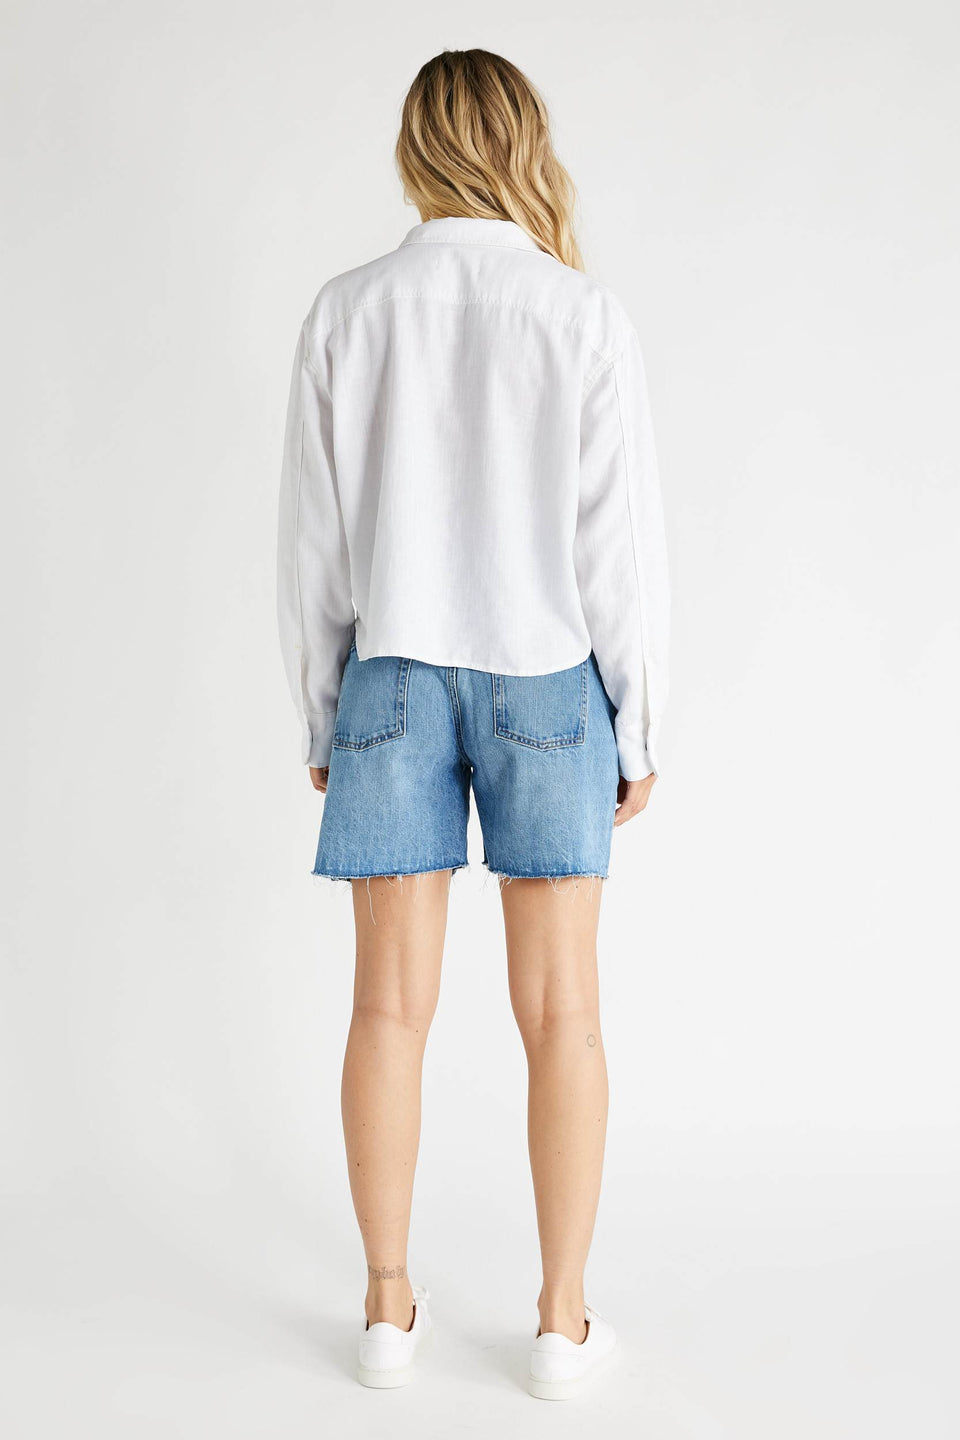 Diana Long Sleeve Top in Sustainable White